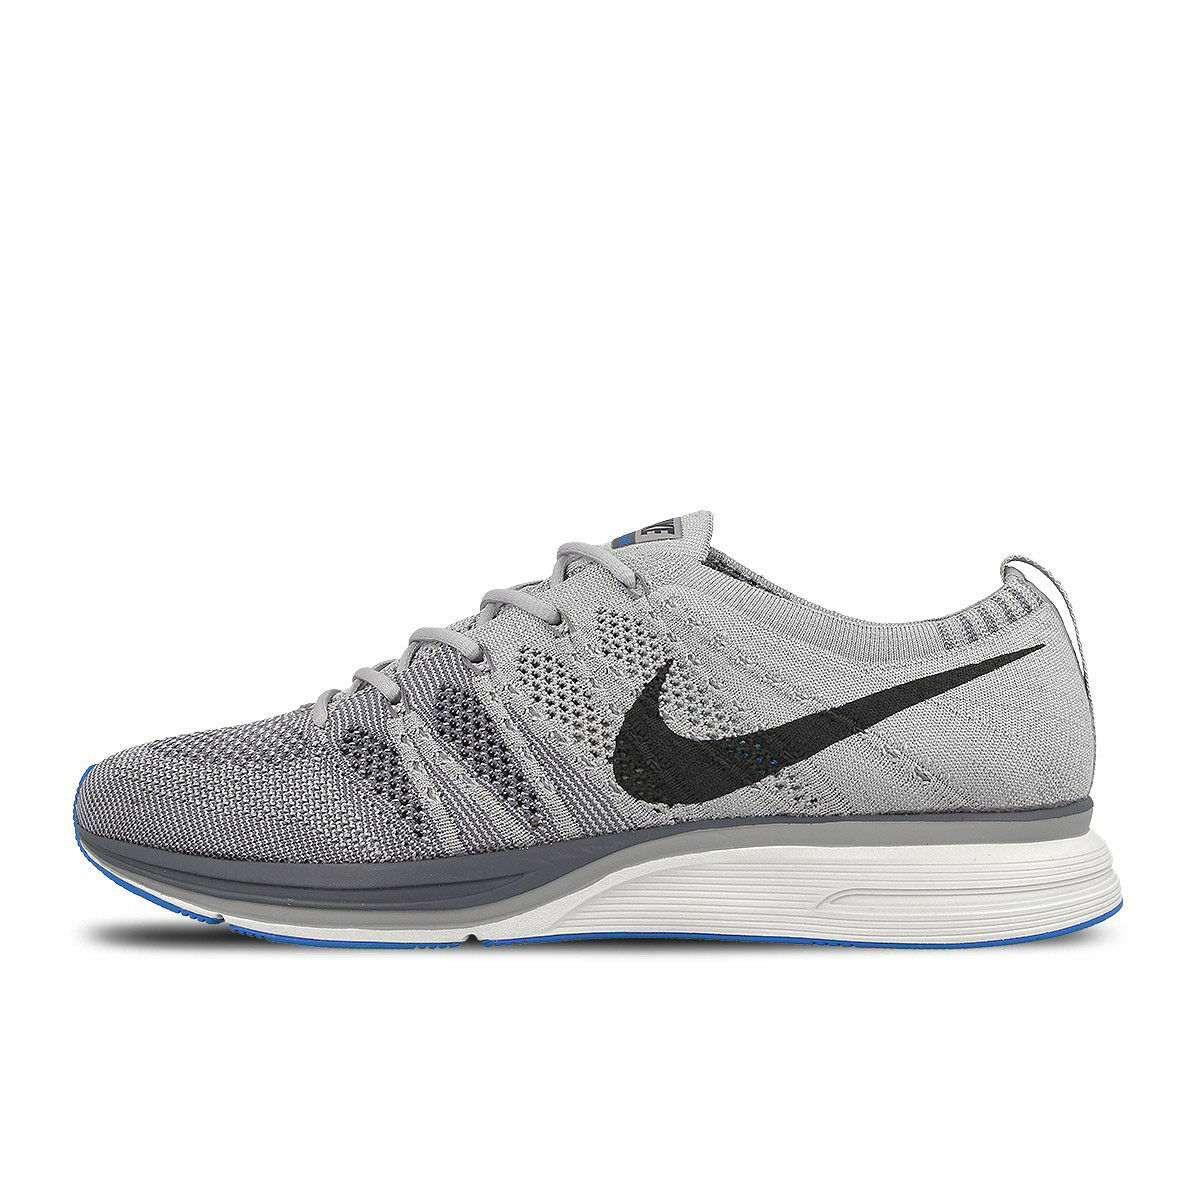 4d21bdded2 Nike Men Flyknit Trainer Reflective Running shoes Grey AH8396-006 US7-11 04'